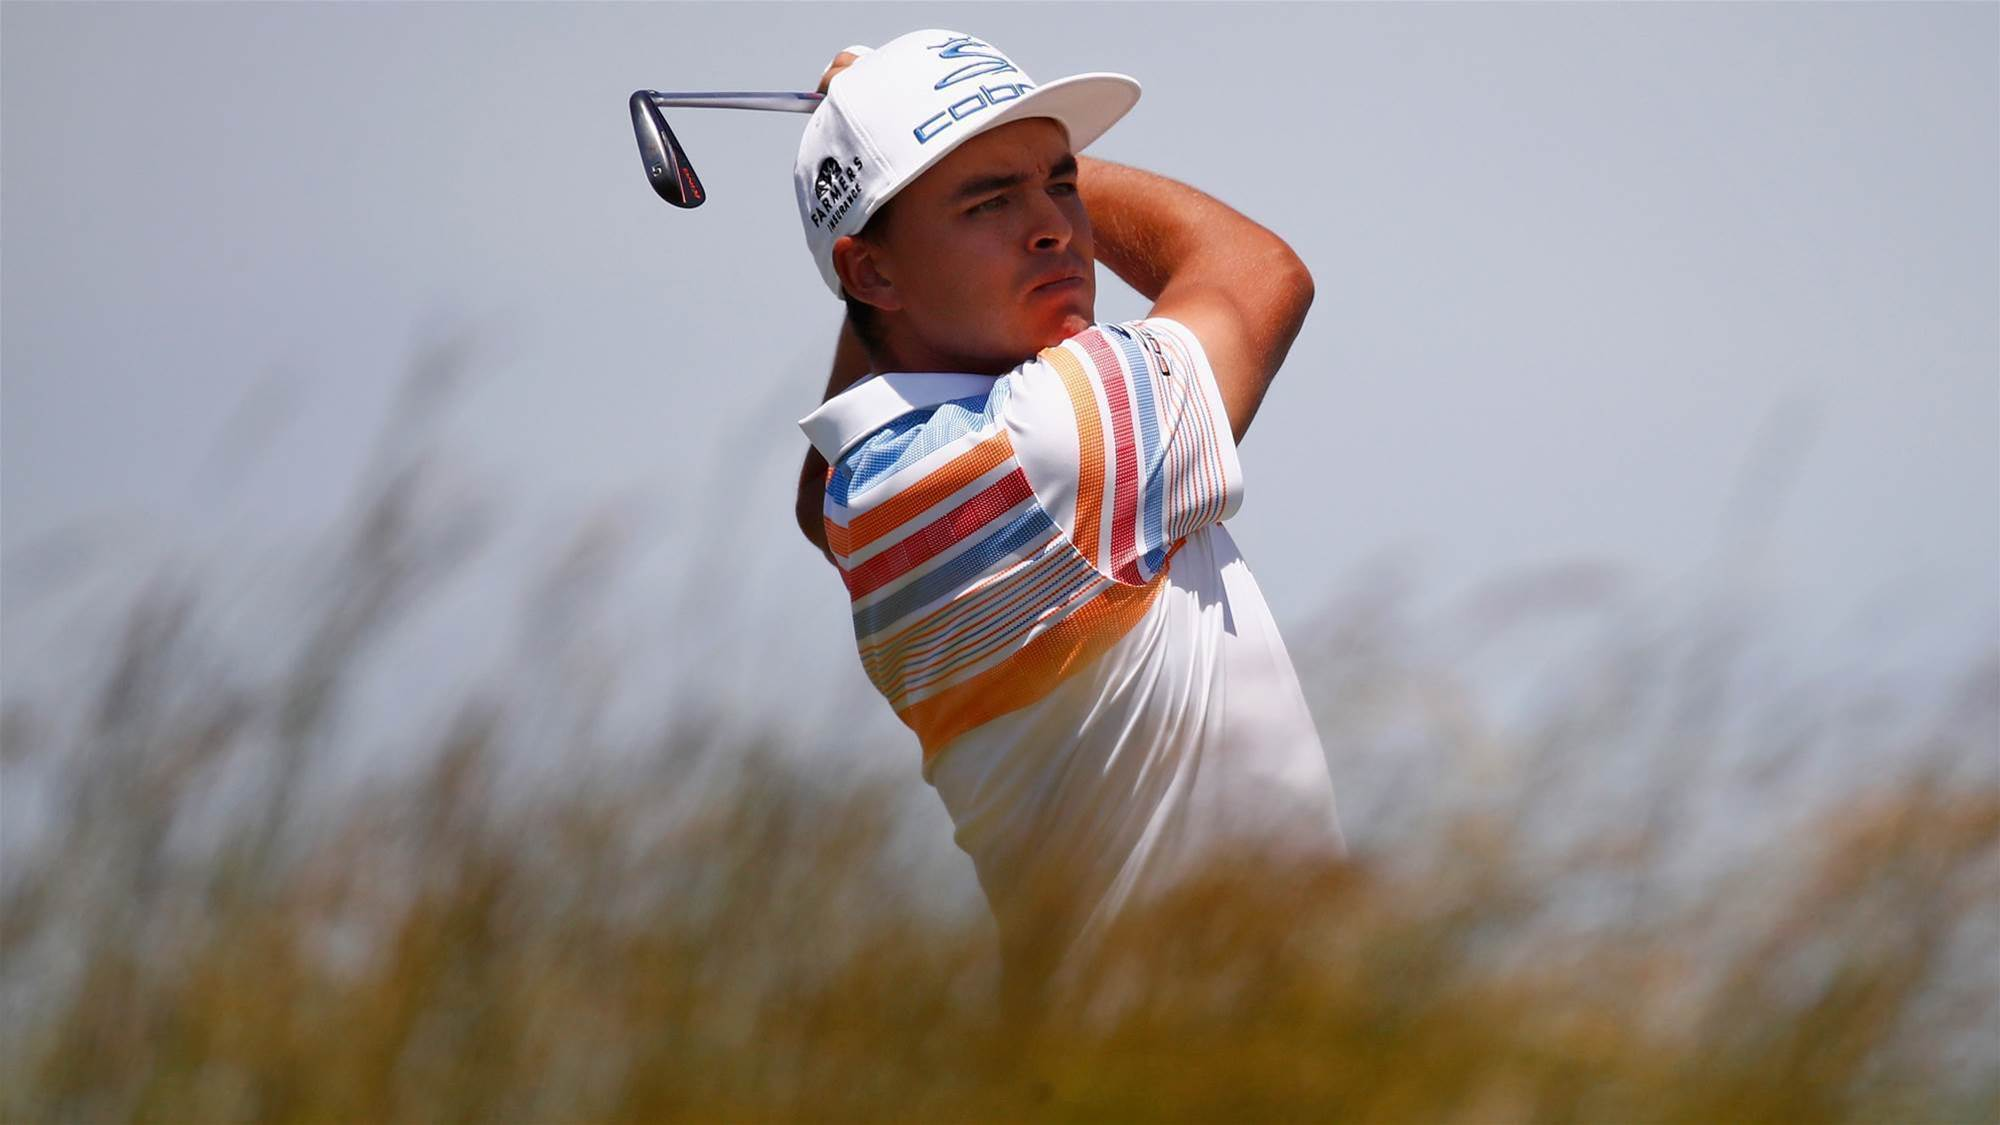 U.S OPEN: Fowler off to hot start as stars struggle